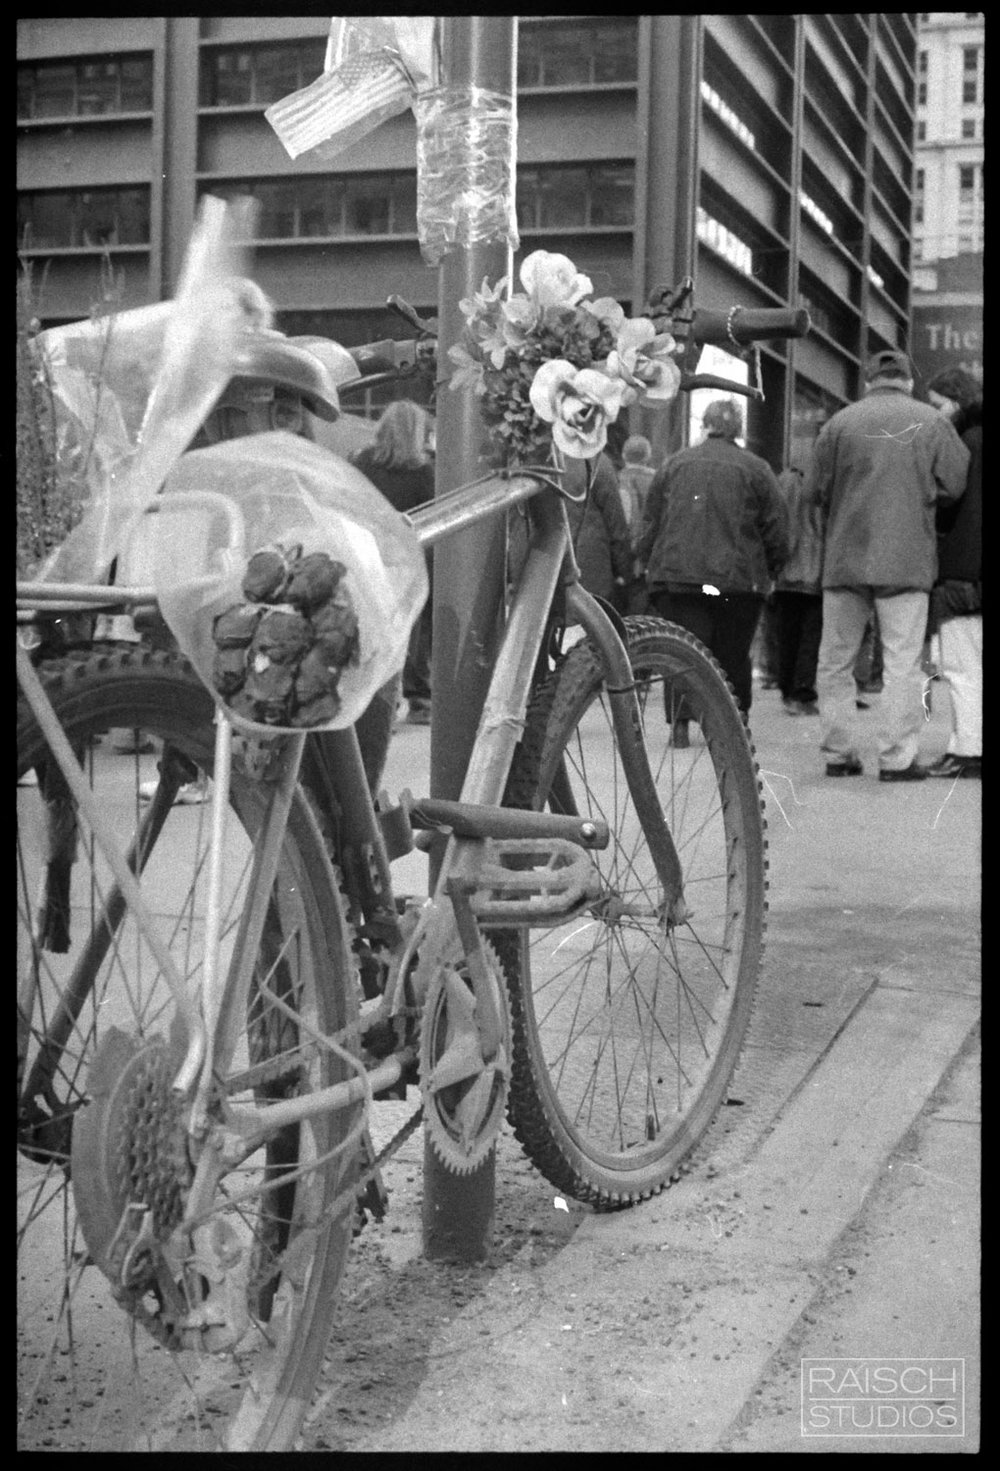 September 11th Delivery Bike Memorial, Photographed March 11, 2002 © Michael Raisch